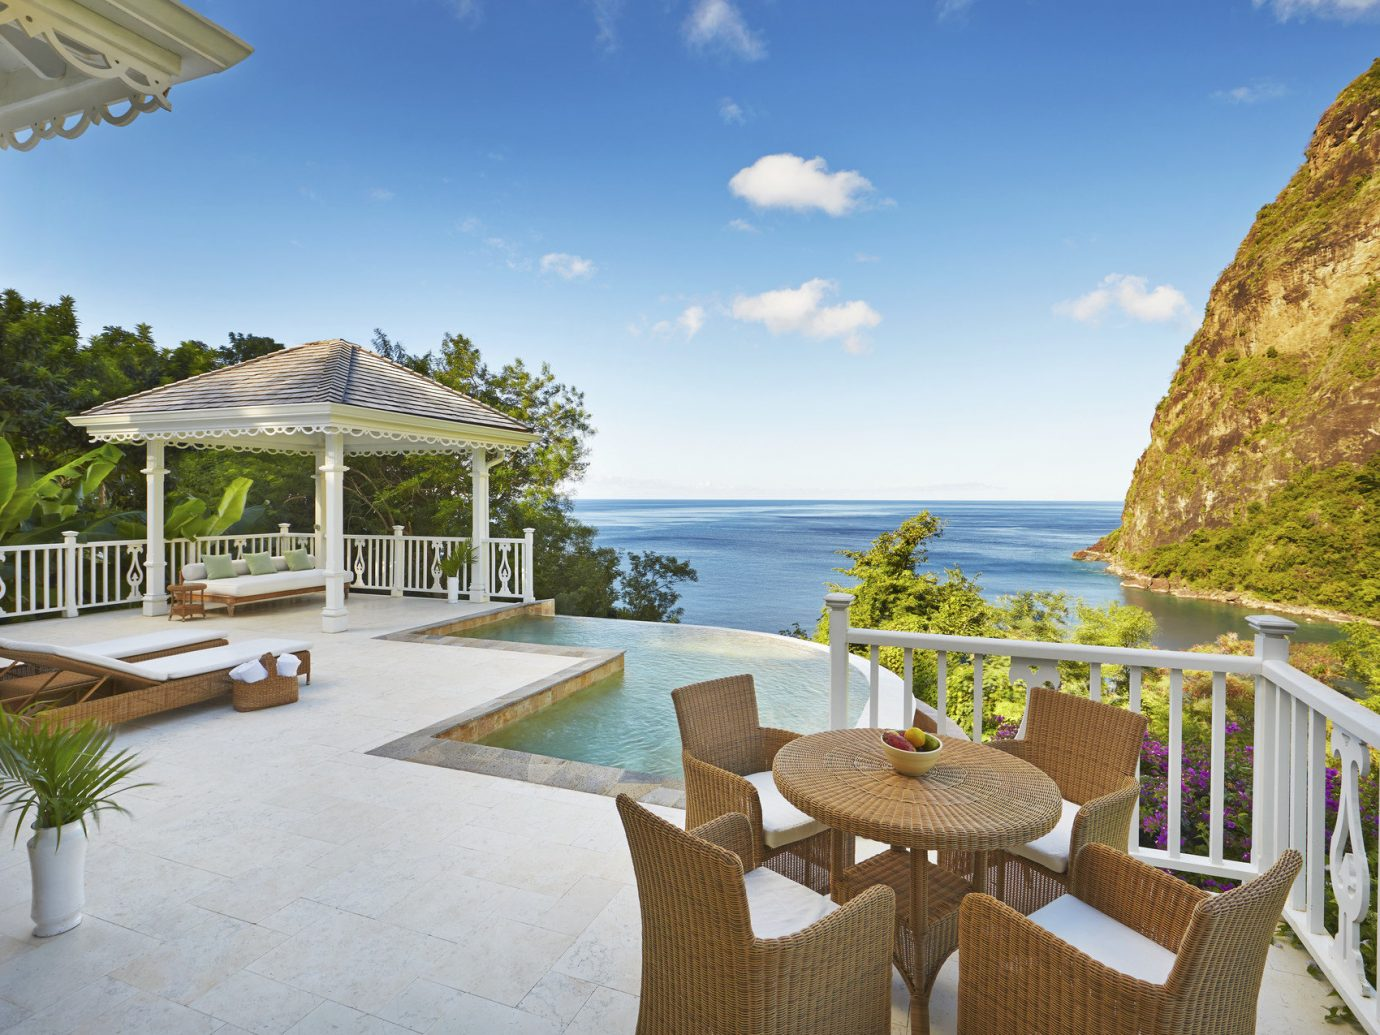 Pool And Patio At Grand Luxury Villa At Viceroy Resort In Sugar Beach